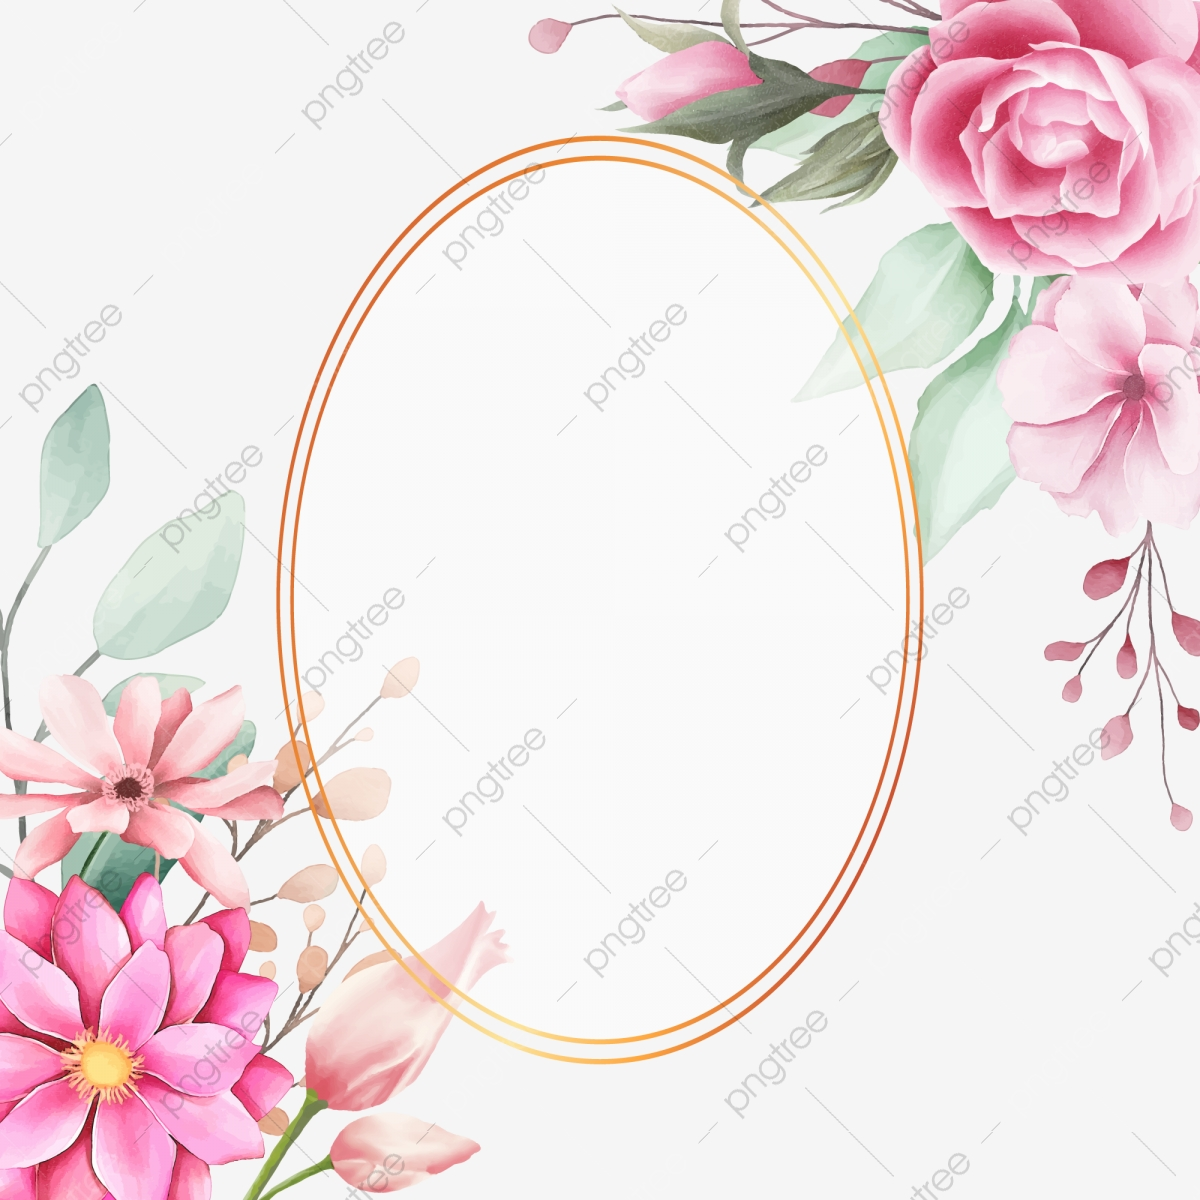 Floral Border Png Images Vector And Psd Files Free Download On Pngtree,Beautiful Master Bedroom Designs For Girls